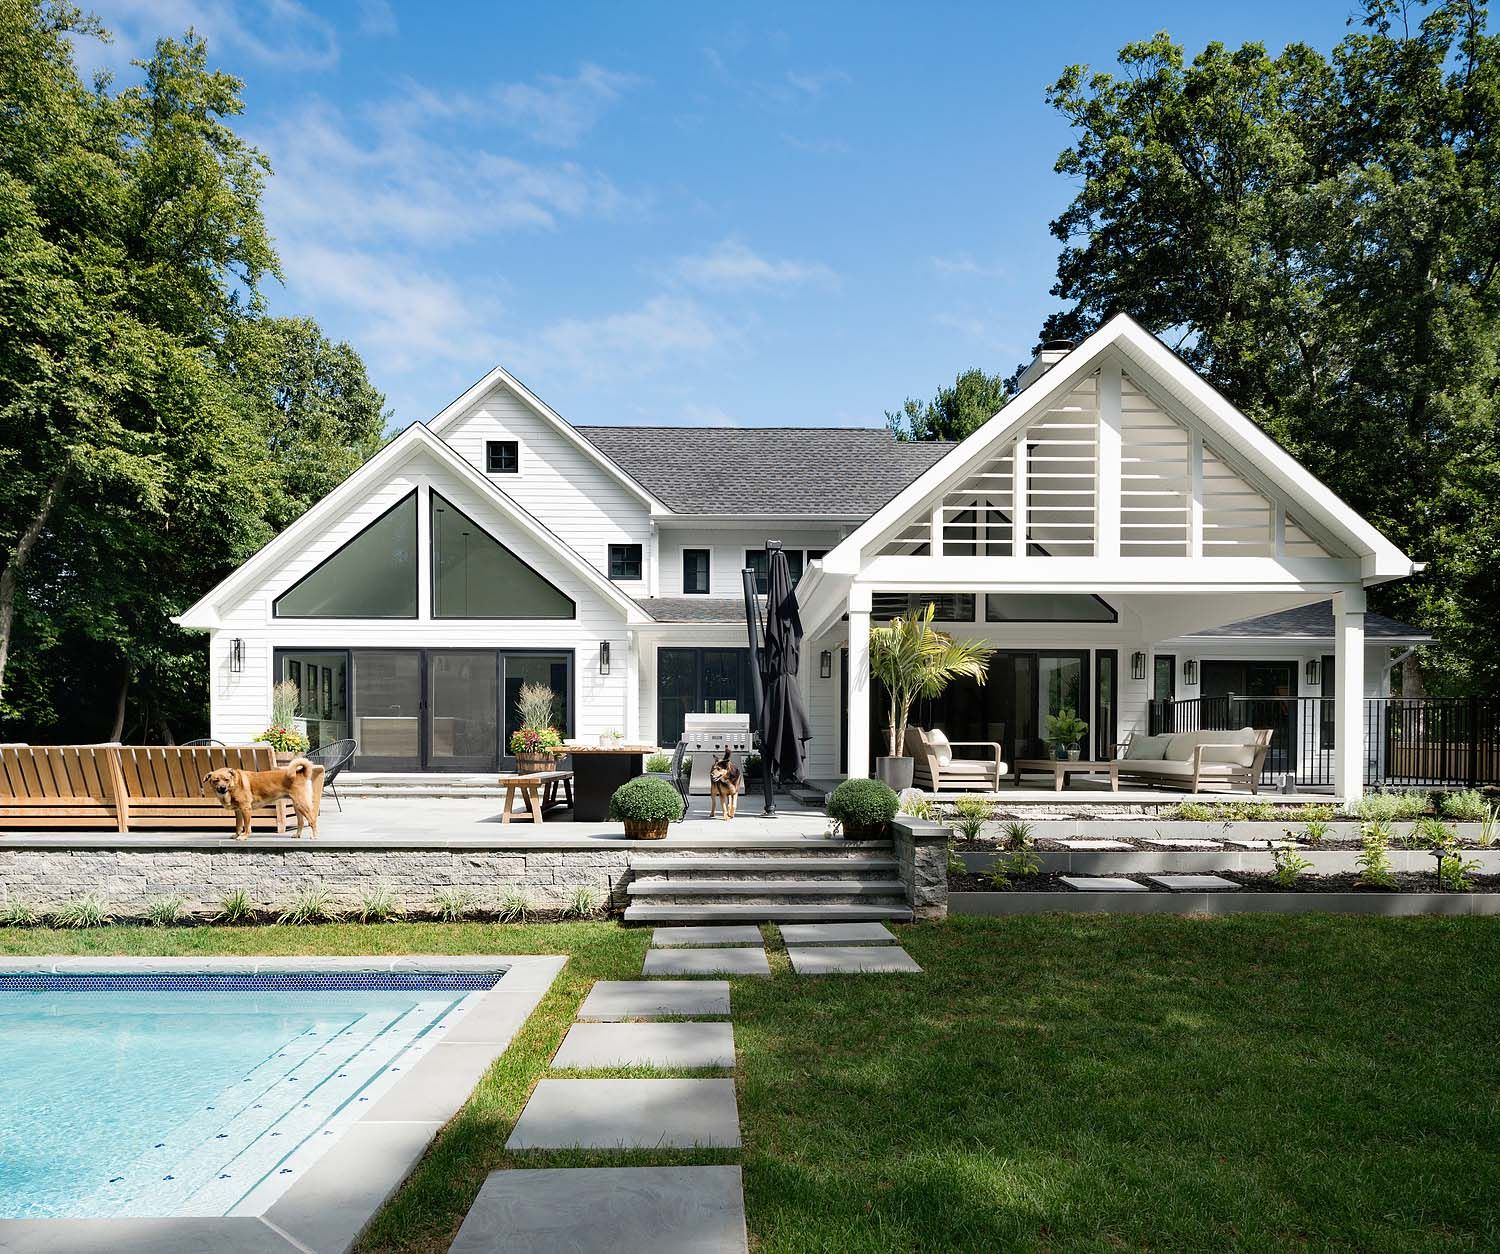 Bright And Airy Contemporary Farmhouse Style Surrounded By